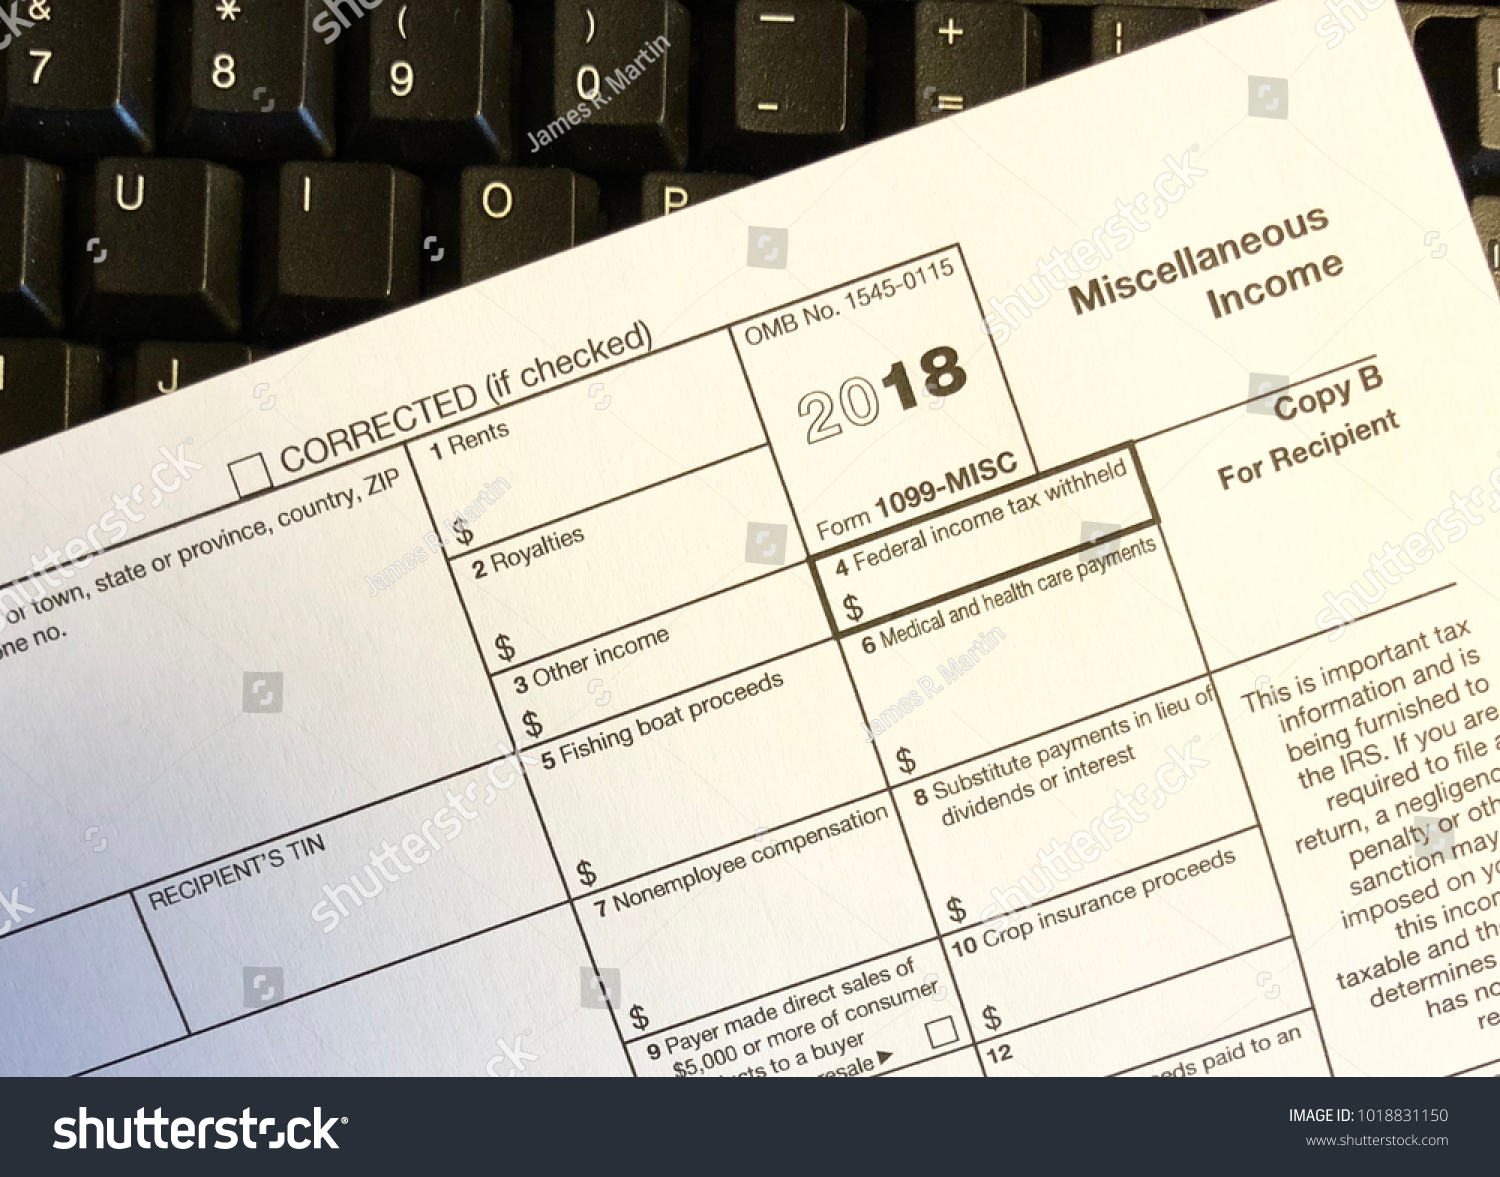 1099 Miscellaneous Income Tax Form